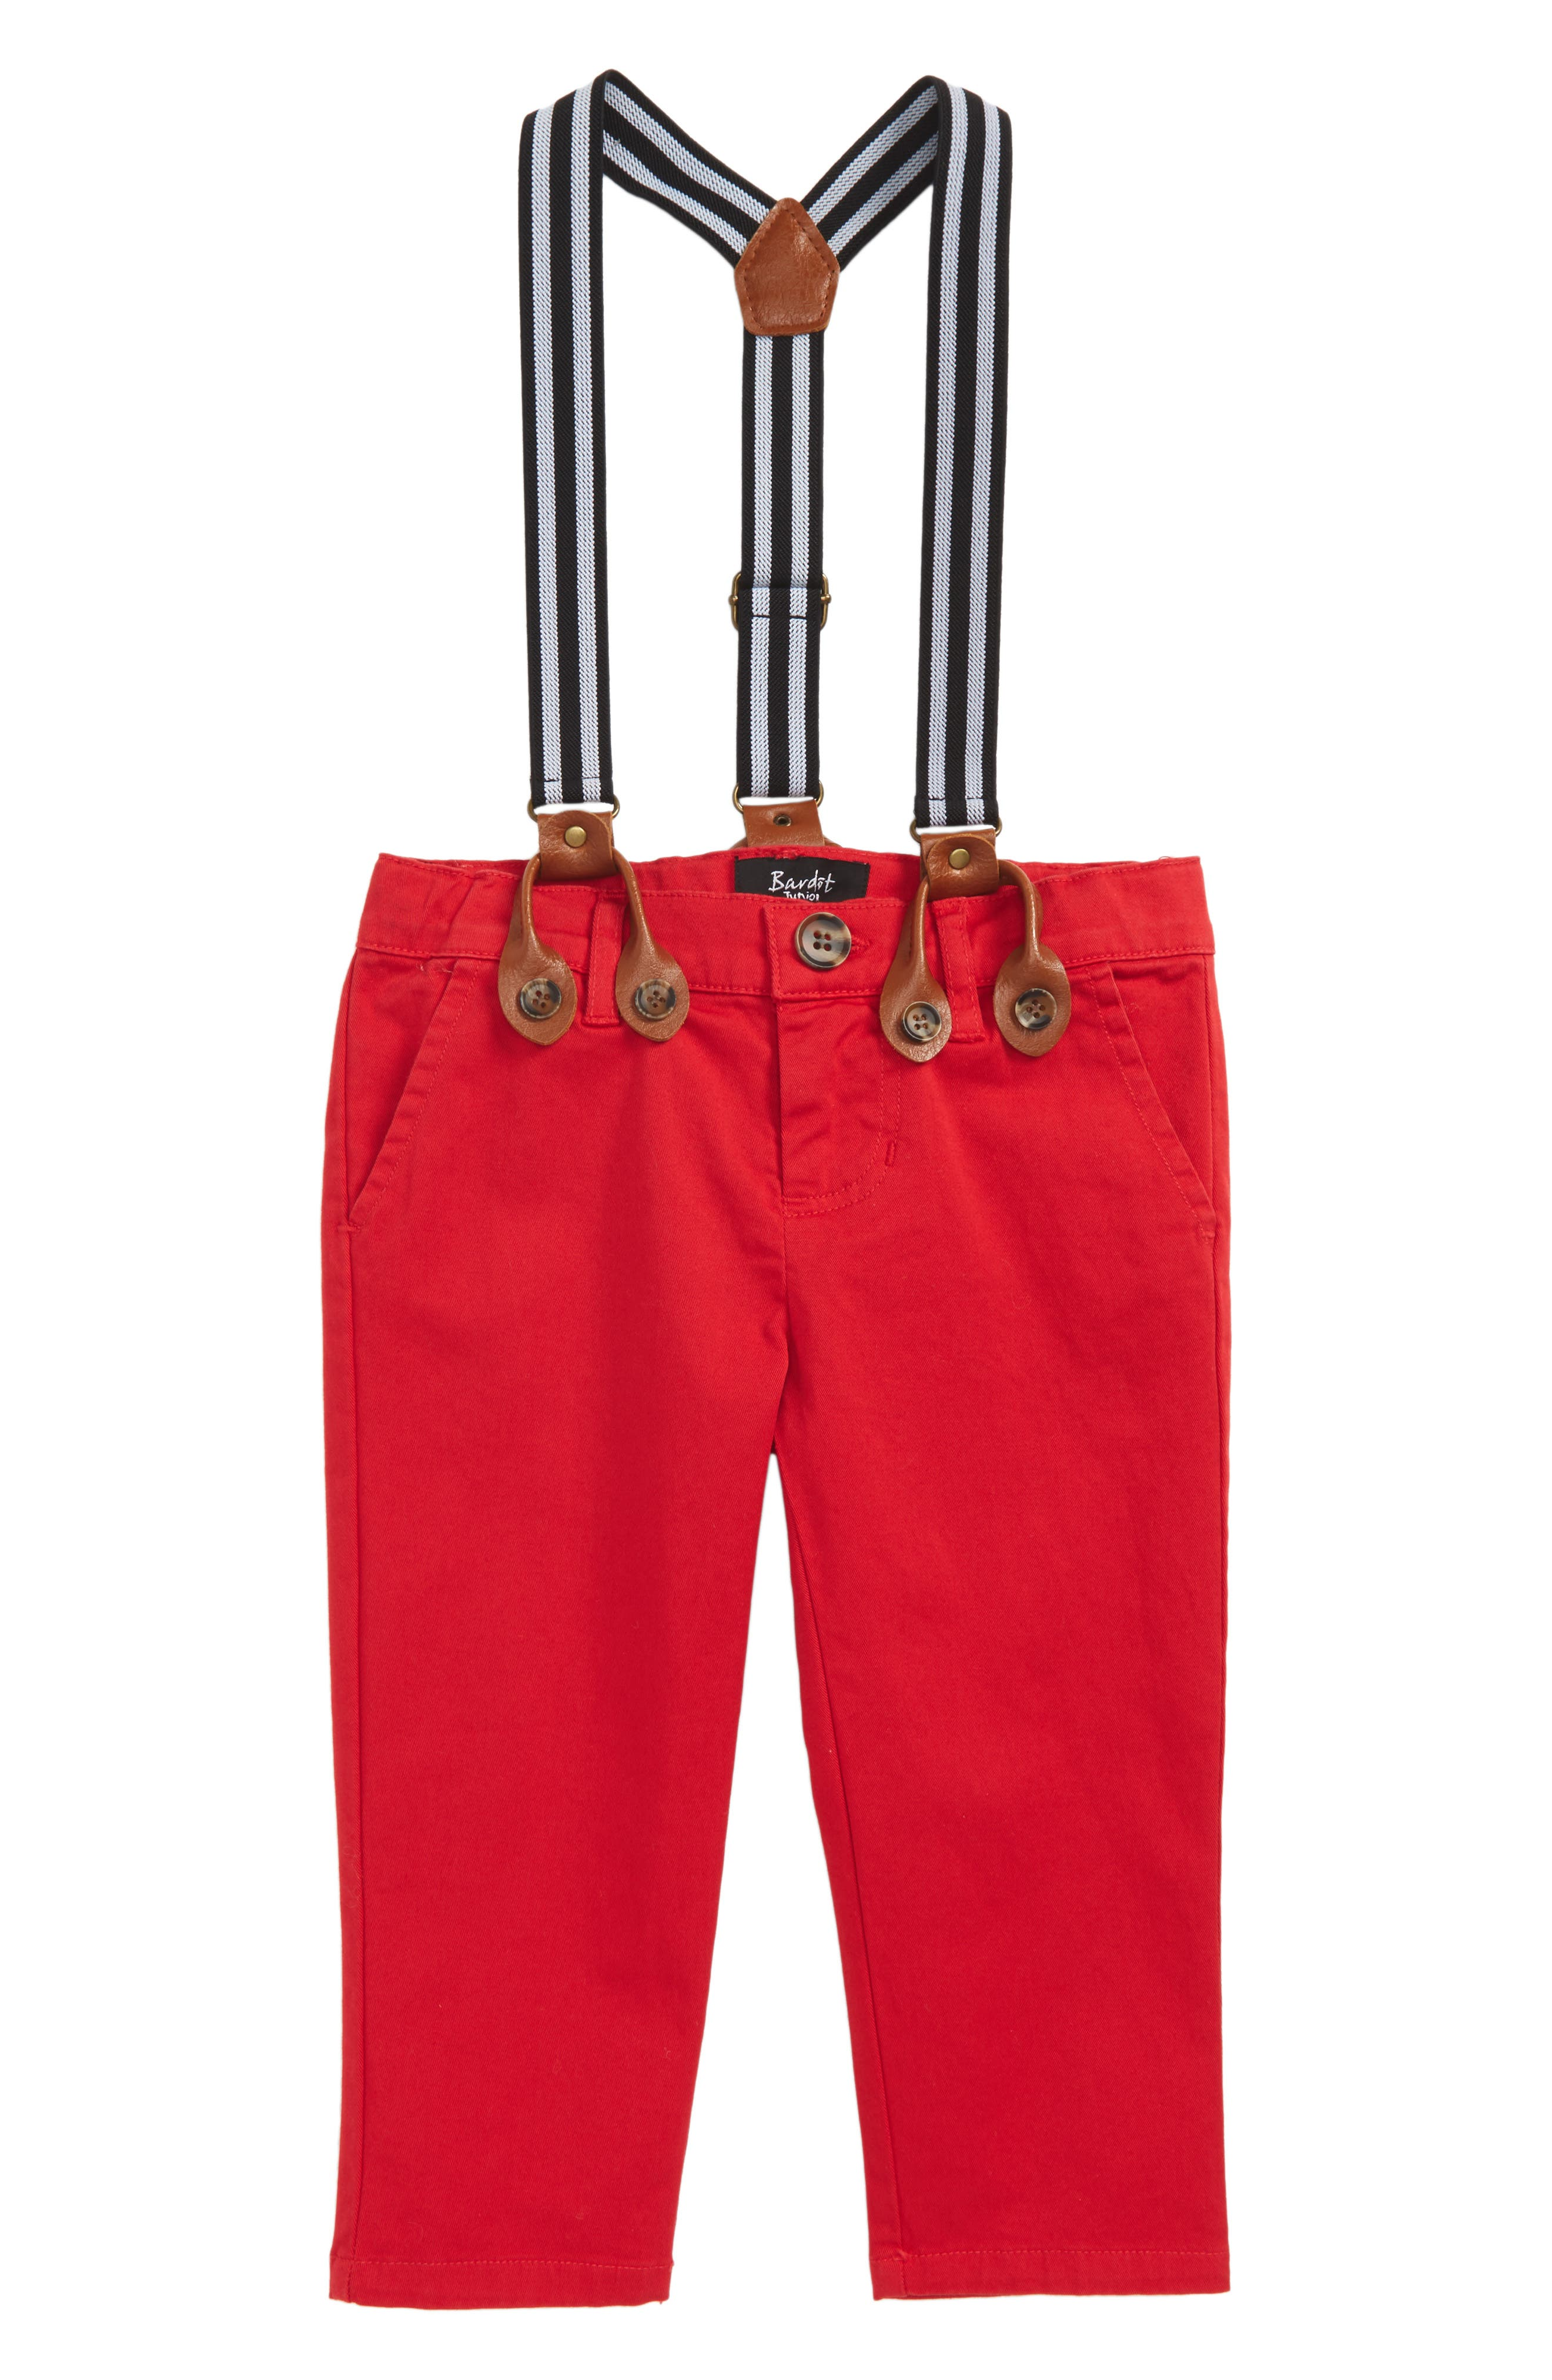 Alternate Image 1 Selected - Bardot Junior Chinos & Suspenders Set (Baby Boys)